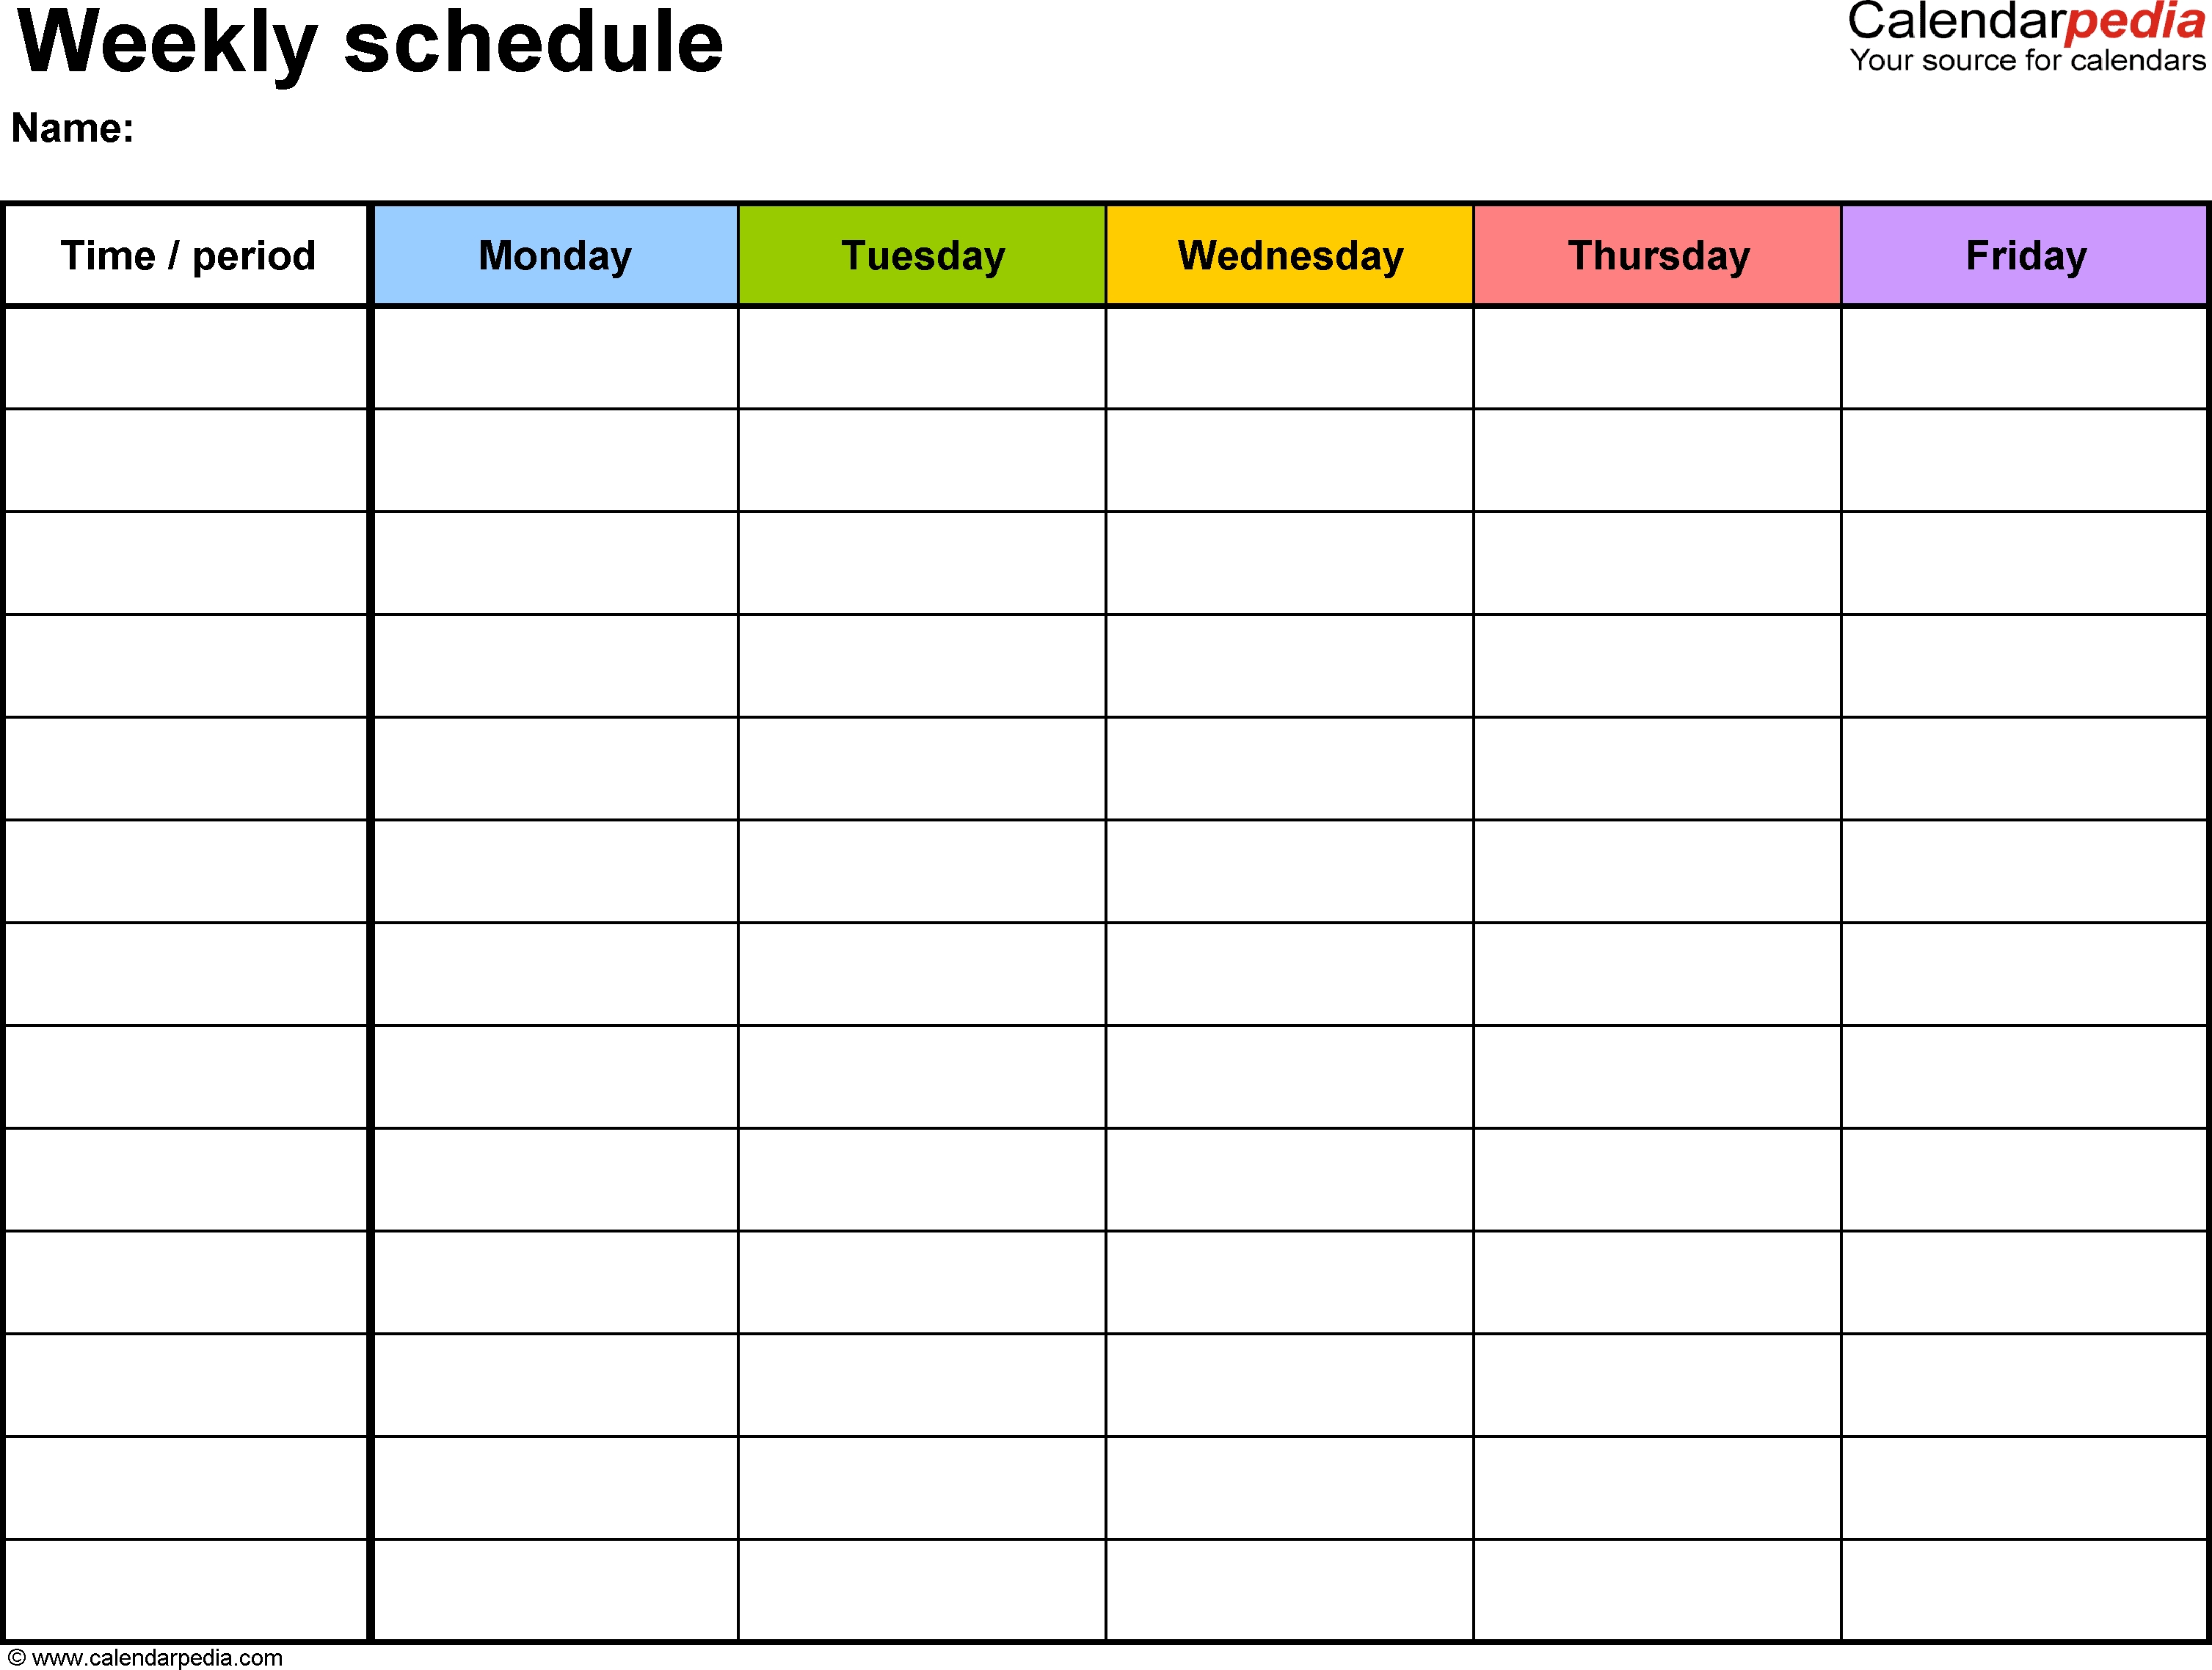 Free Weekly Schedule Templates For Pdf - 18 Templates with regard to Blank Calendar Mon Through Fri With No Dates Or Month